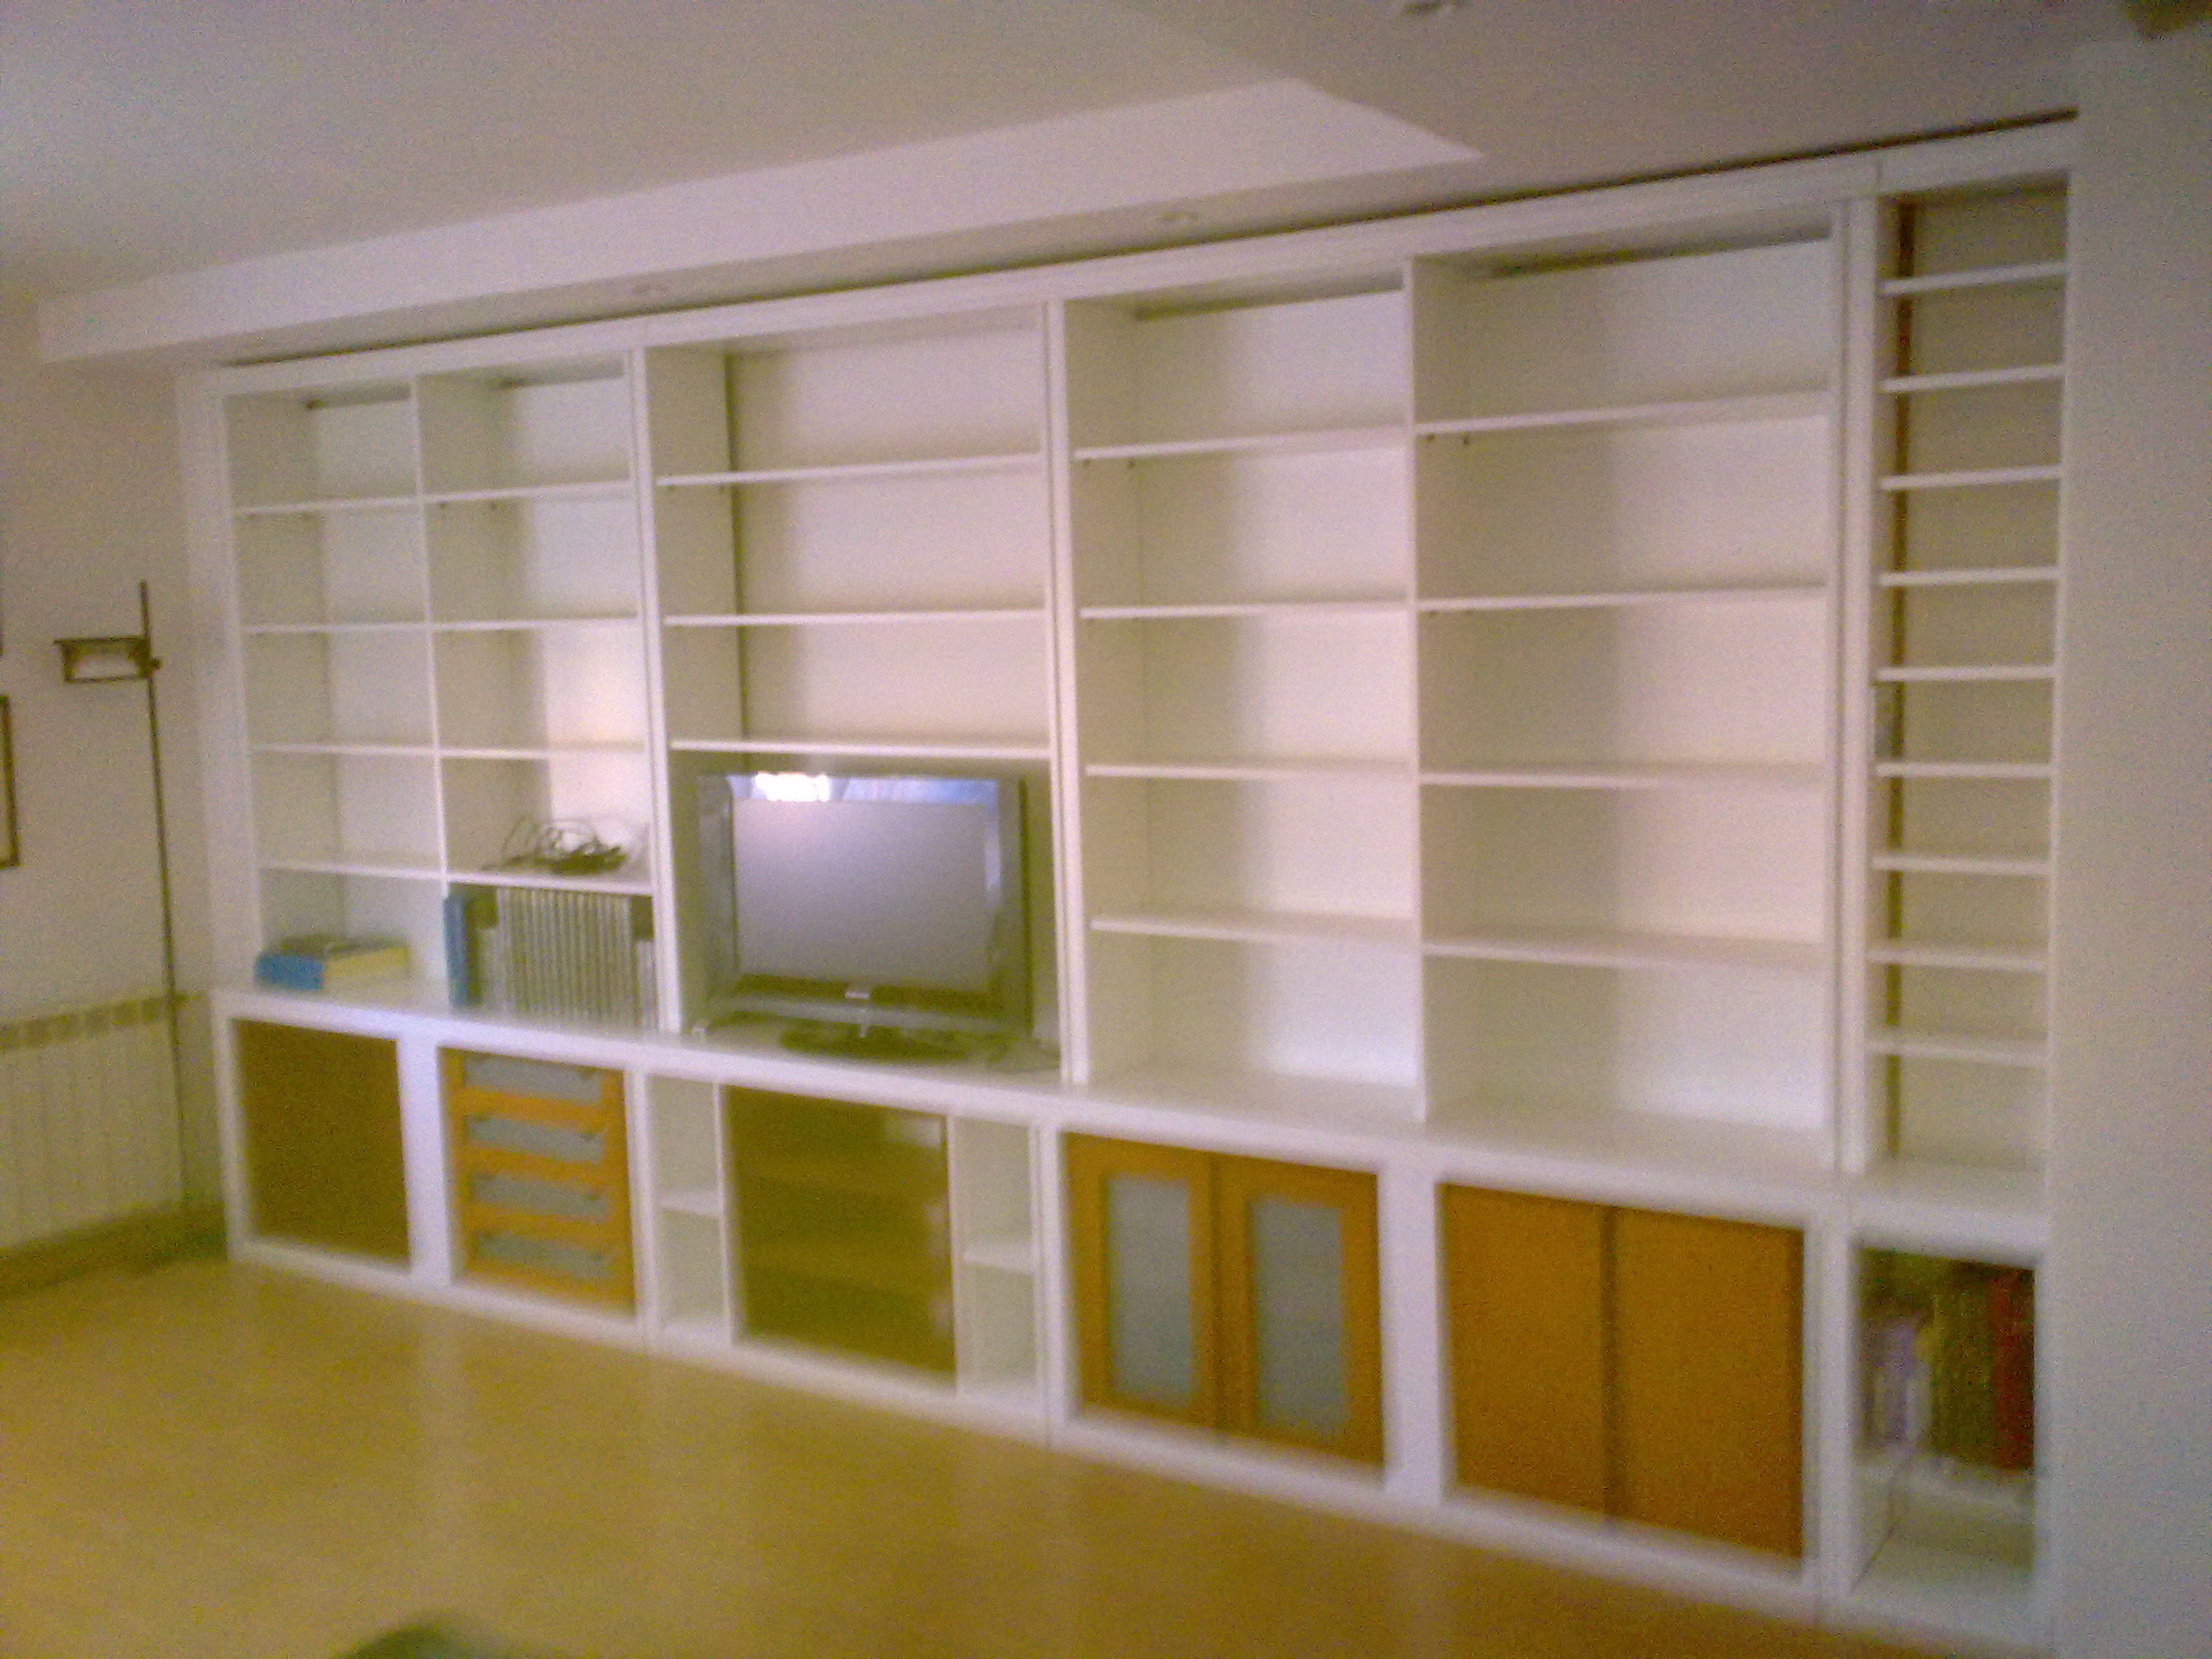 Librer as entre madera for Mueble libreria